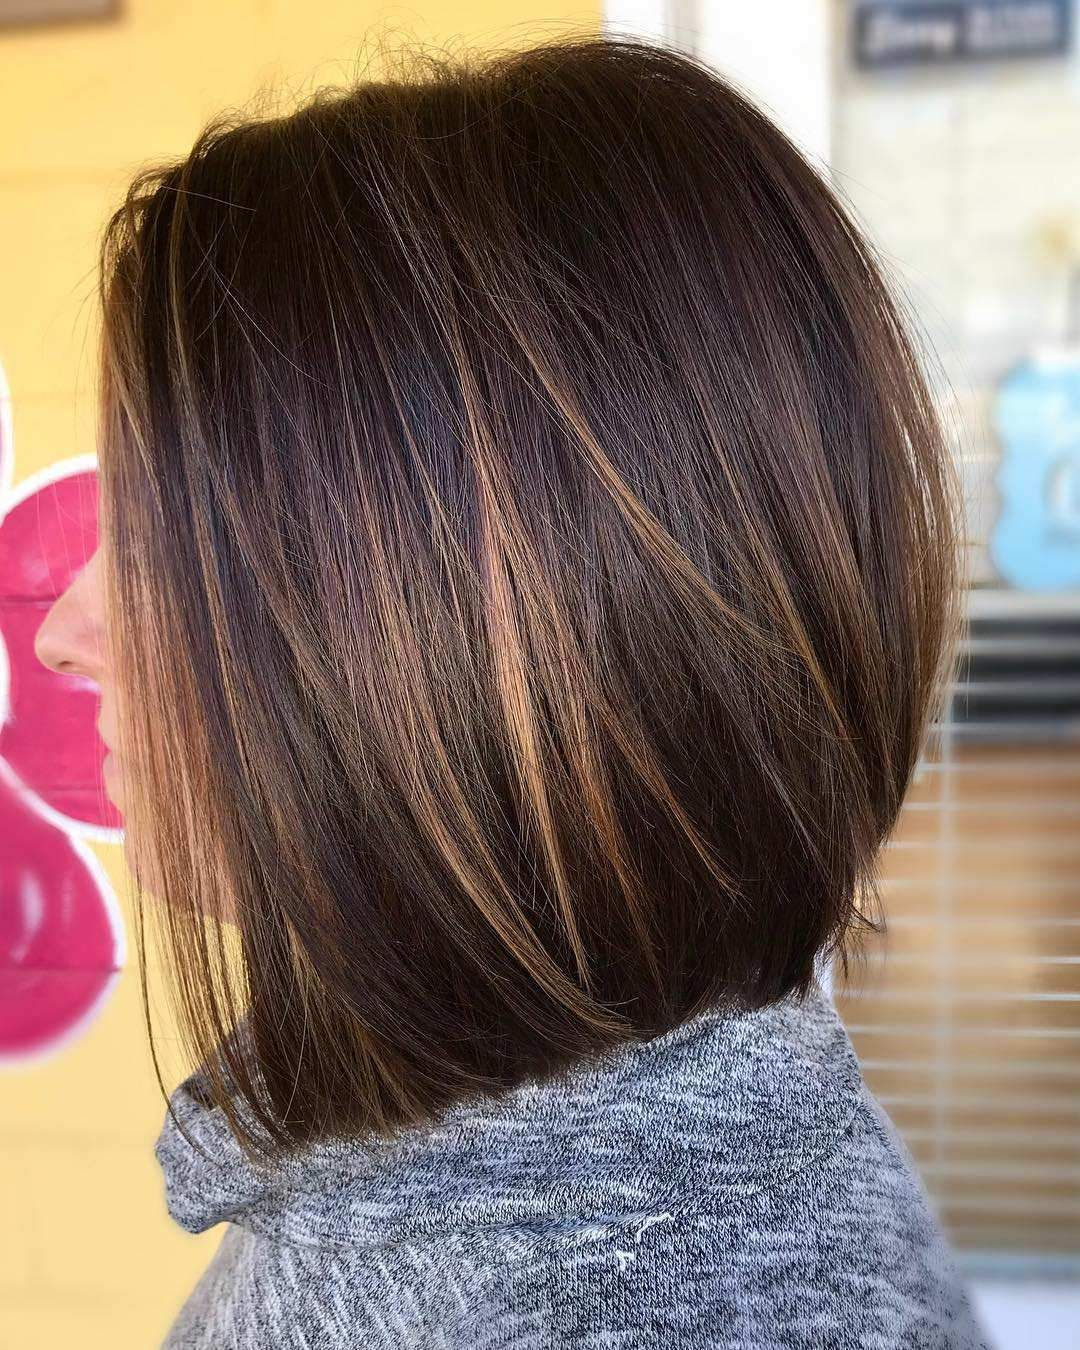 Pin On Short Hairstyles Now Trending